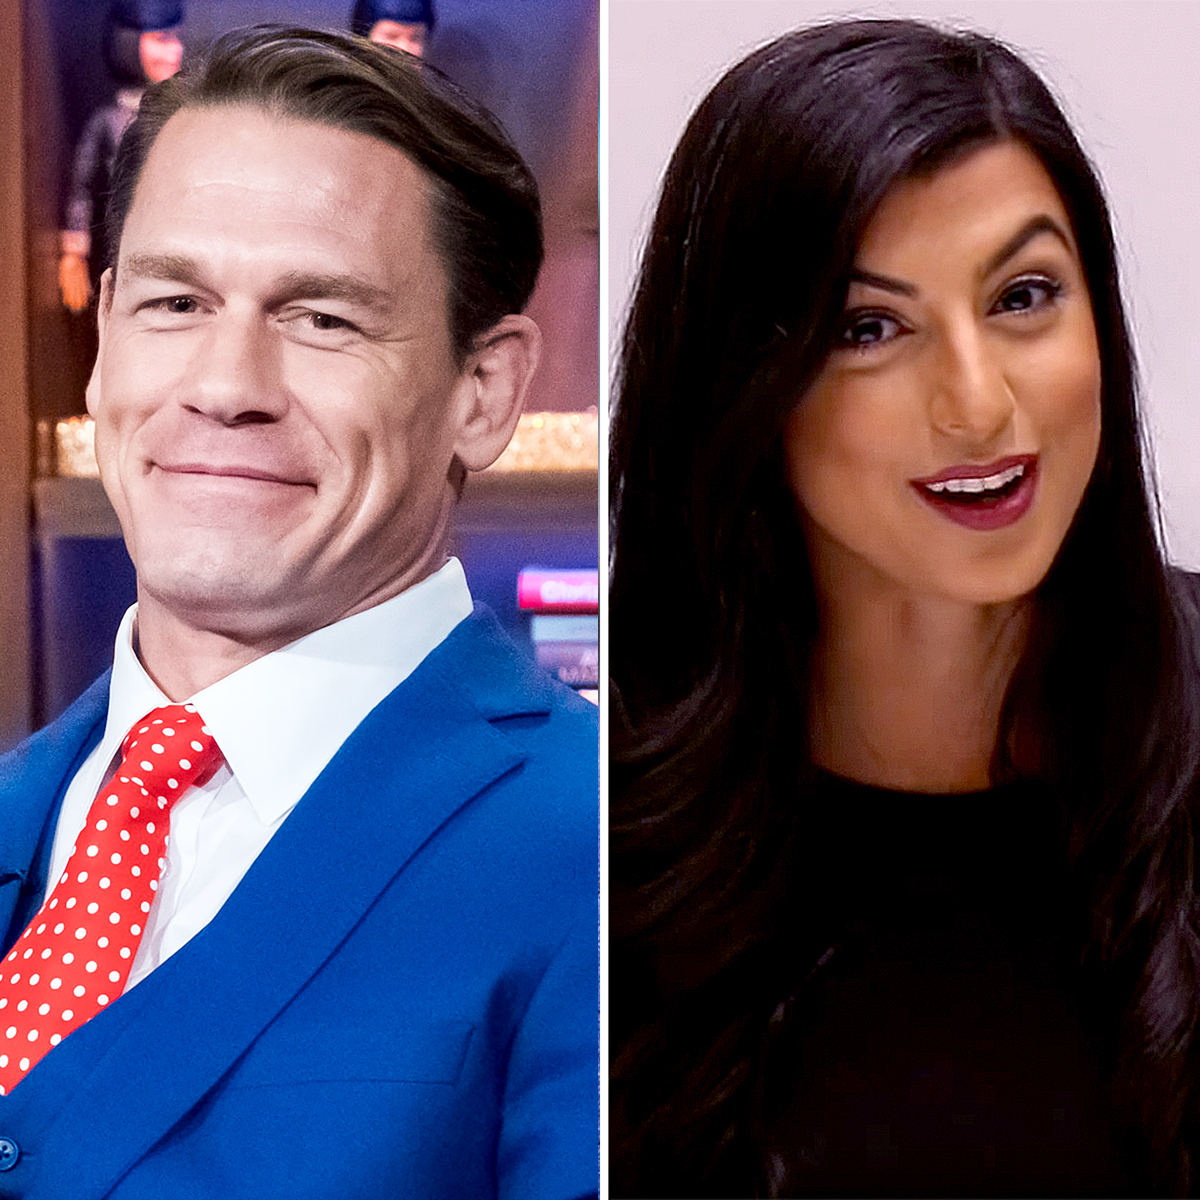 John-Cena-Attends-WWE-Raw-With-Shay-Shariatzadeh